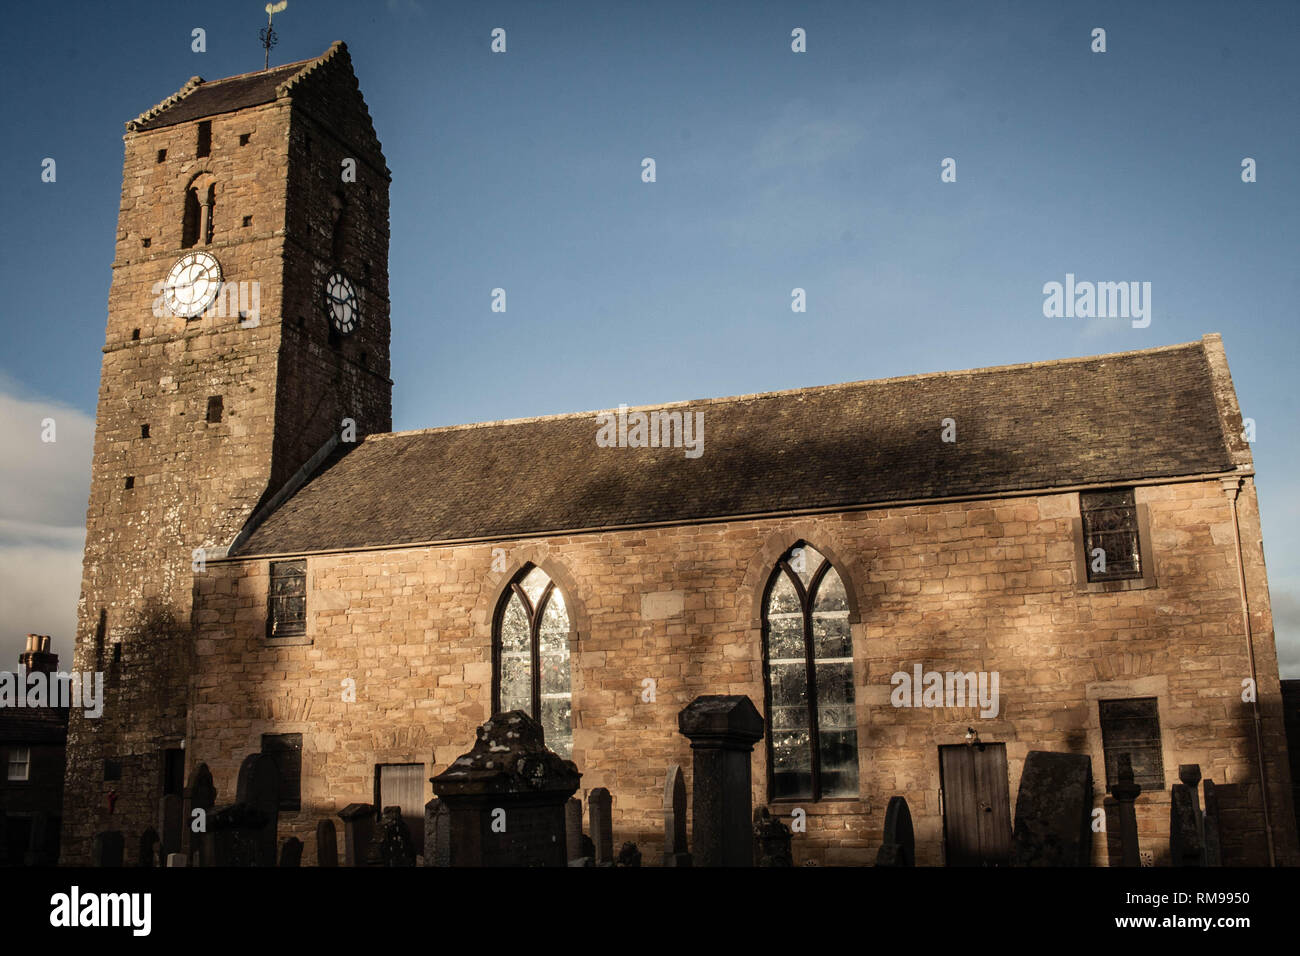 St Serf's Church, Dunning, Perthshire, Scotland - Stock Image